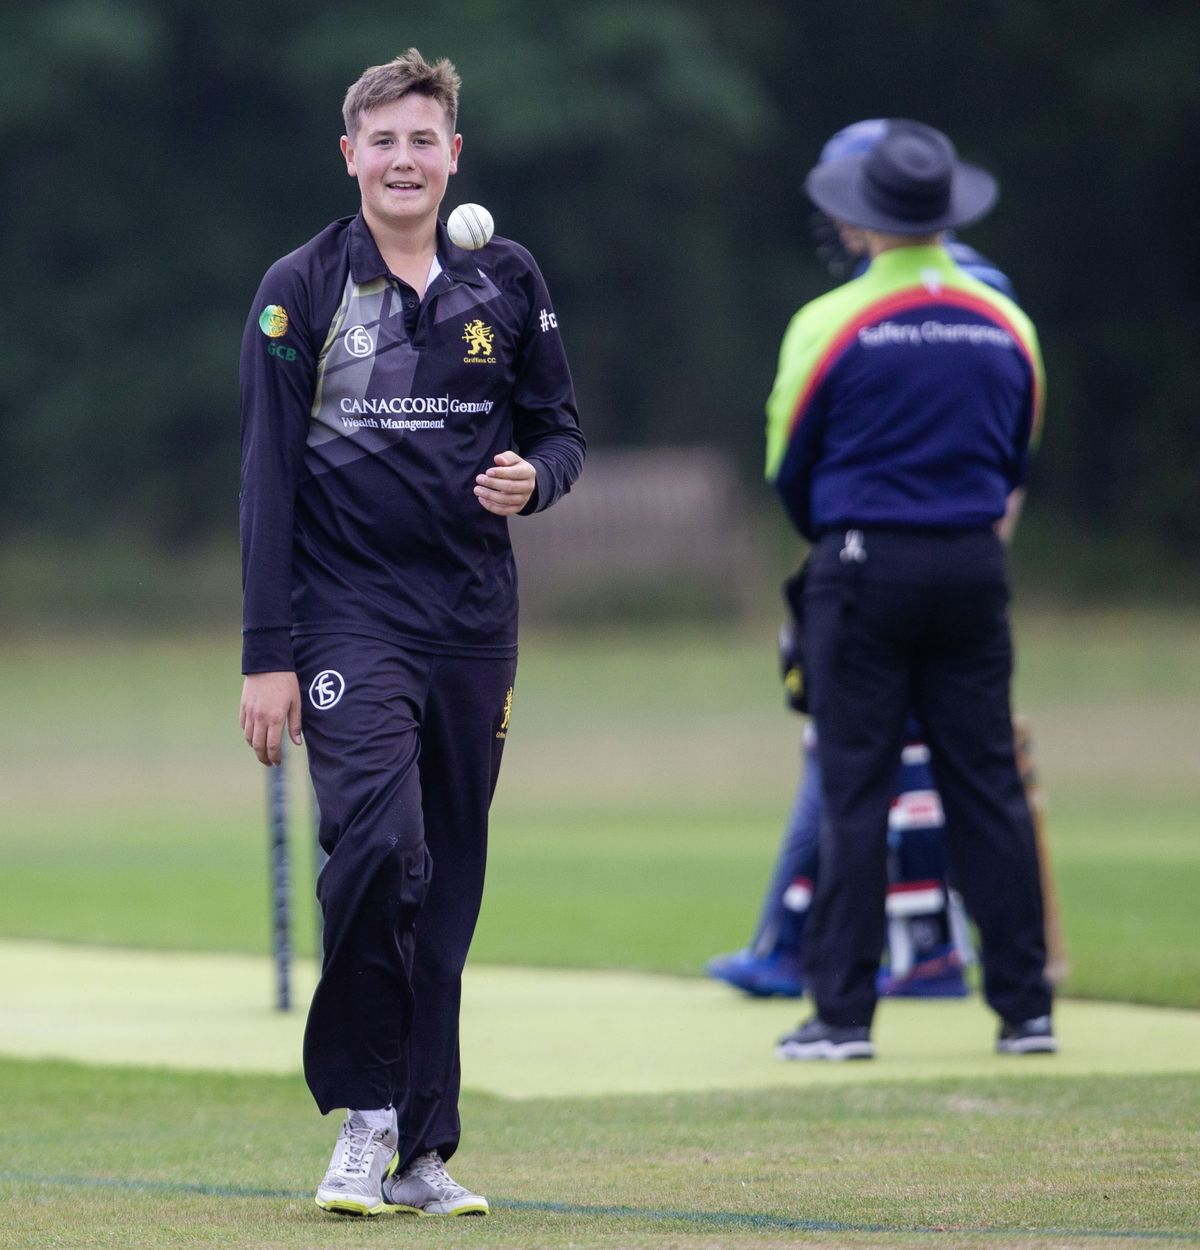 Seventeen-year-old Griffins seamer Luke Bichard has been named in the Guernsey national squad to face the Isle of Man. (Picture by Sophie Rabey, 28584628)